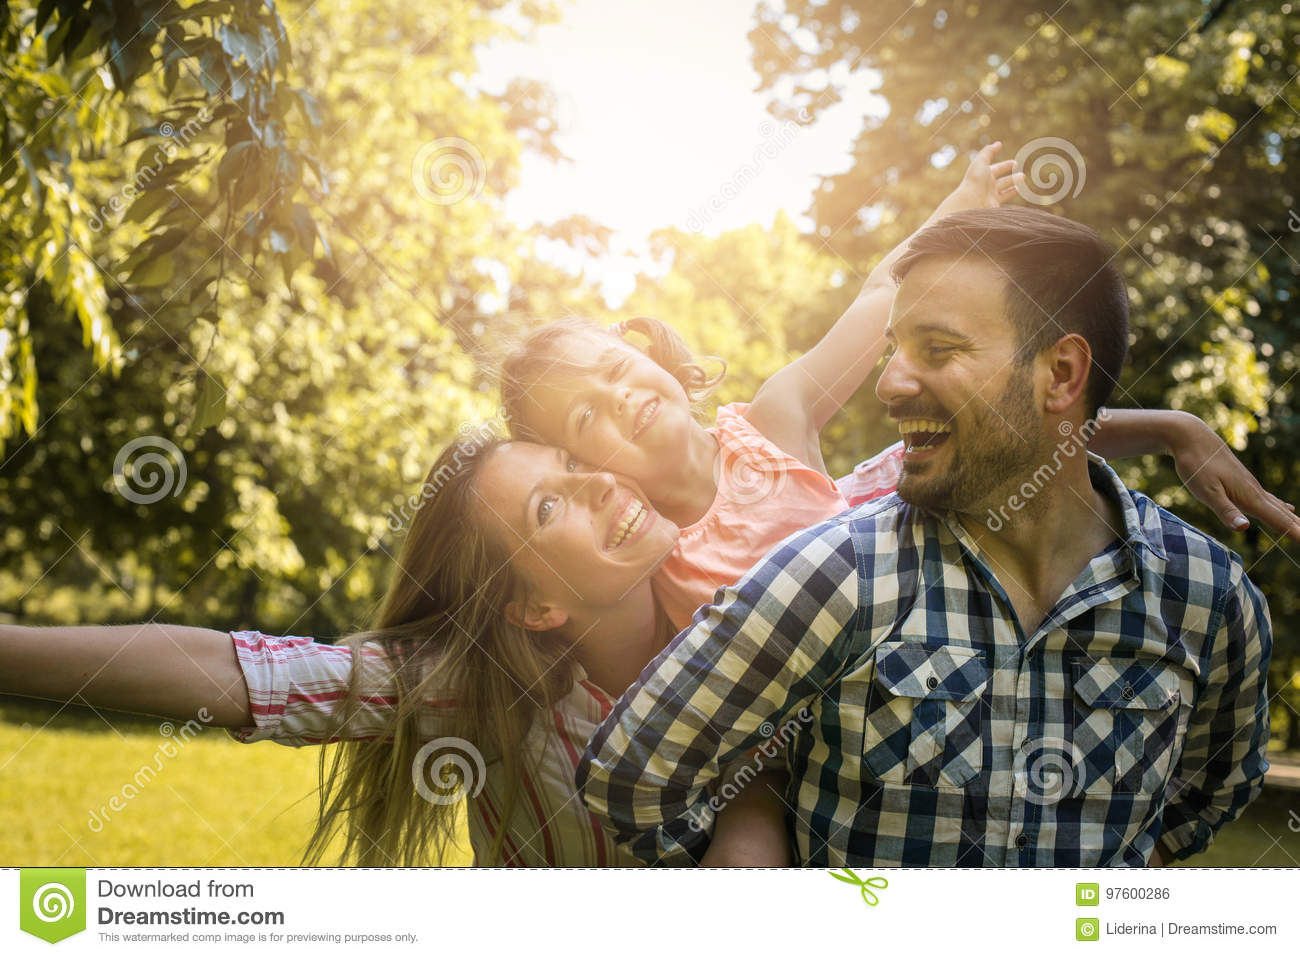 family enjoying together in summer day. Family in nature.